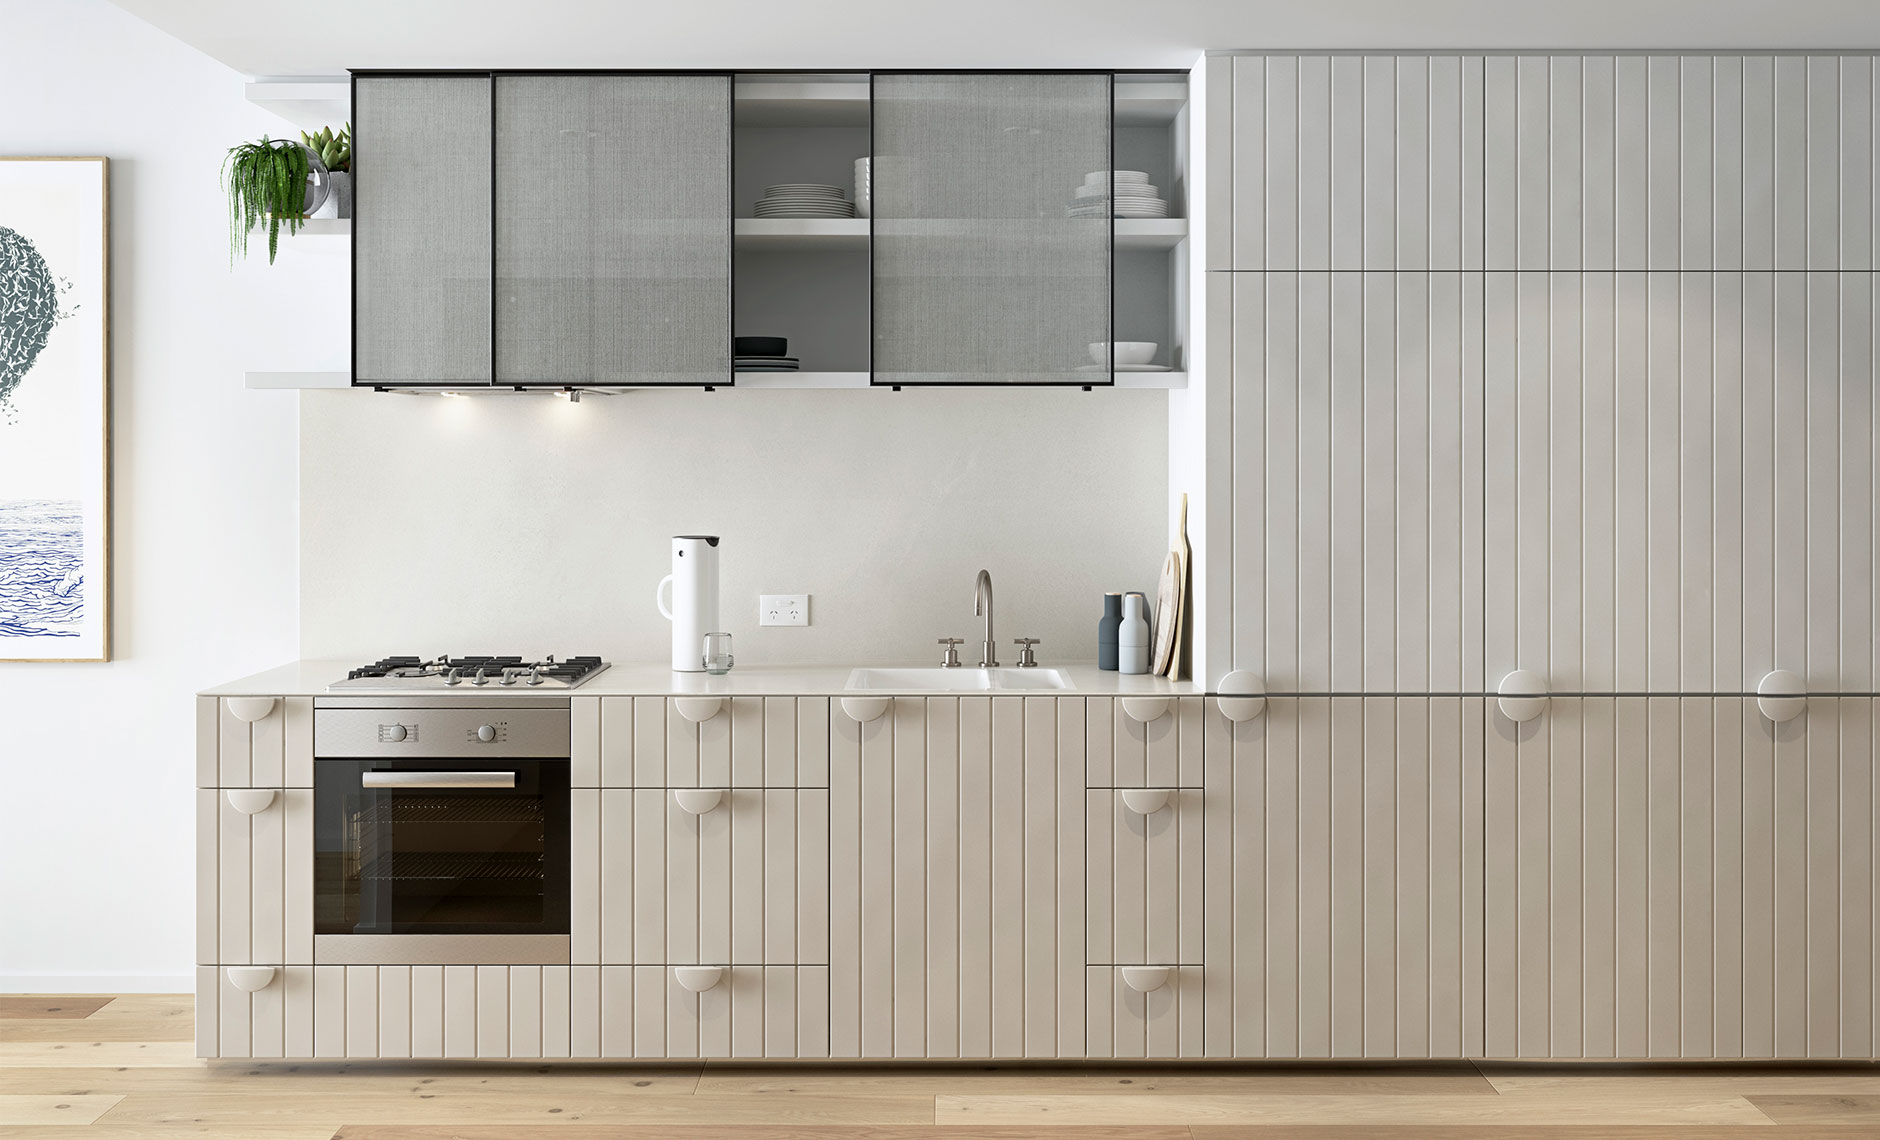 Interiors project in Brunswick East VIC